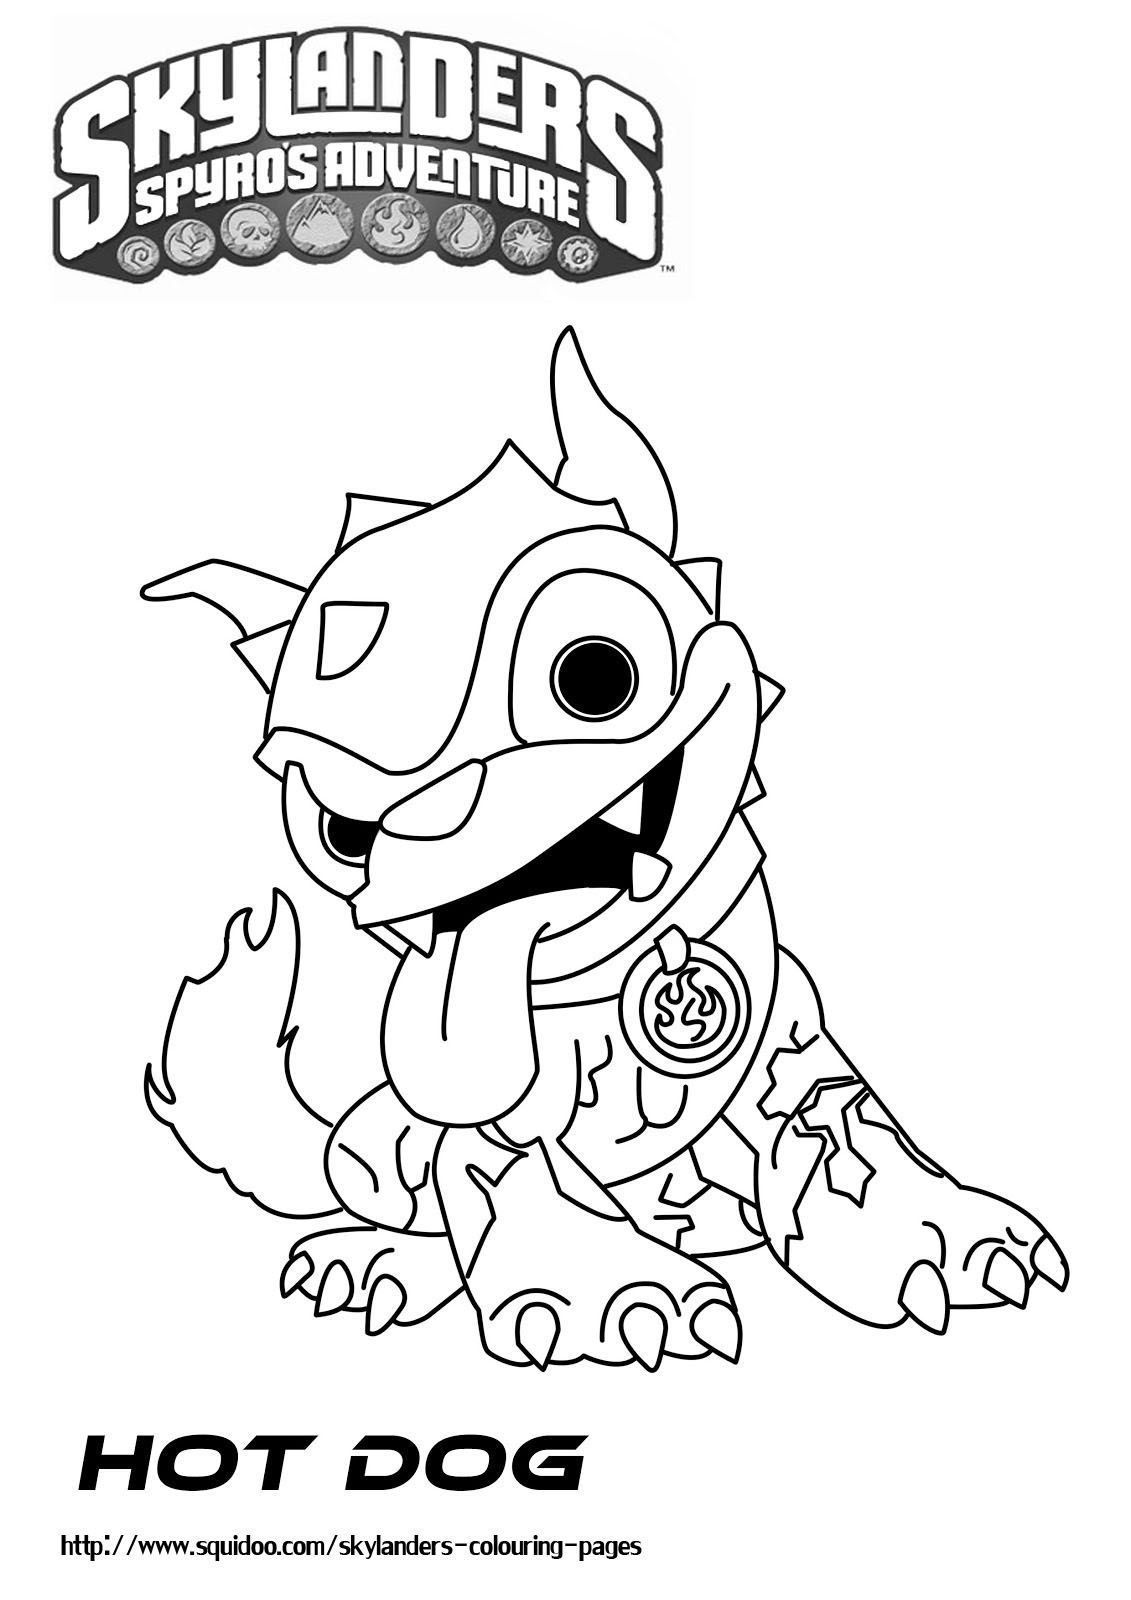 skylanders printable coloring pages - Skylander Coloring Pages Print